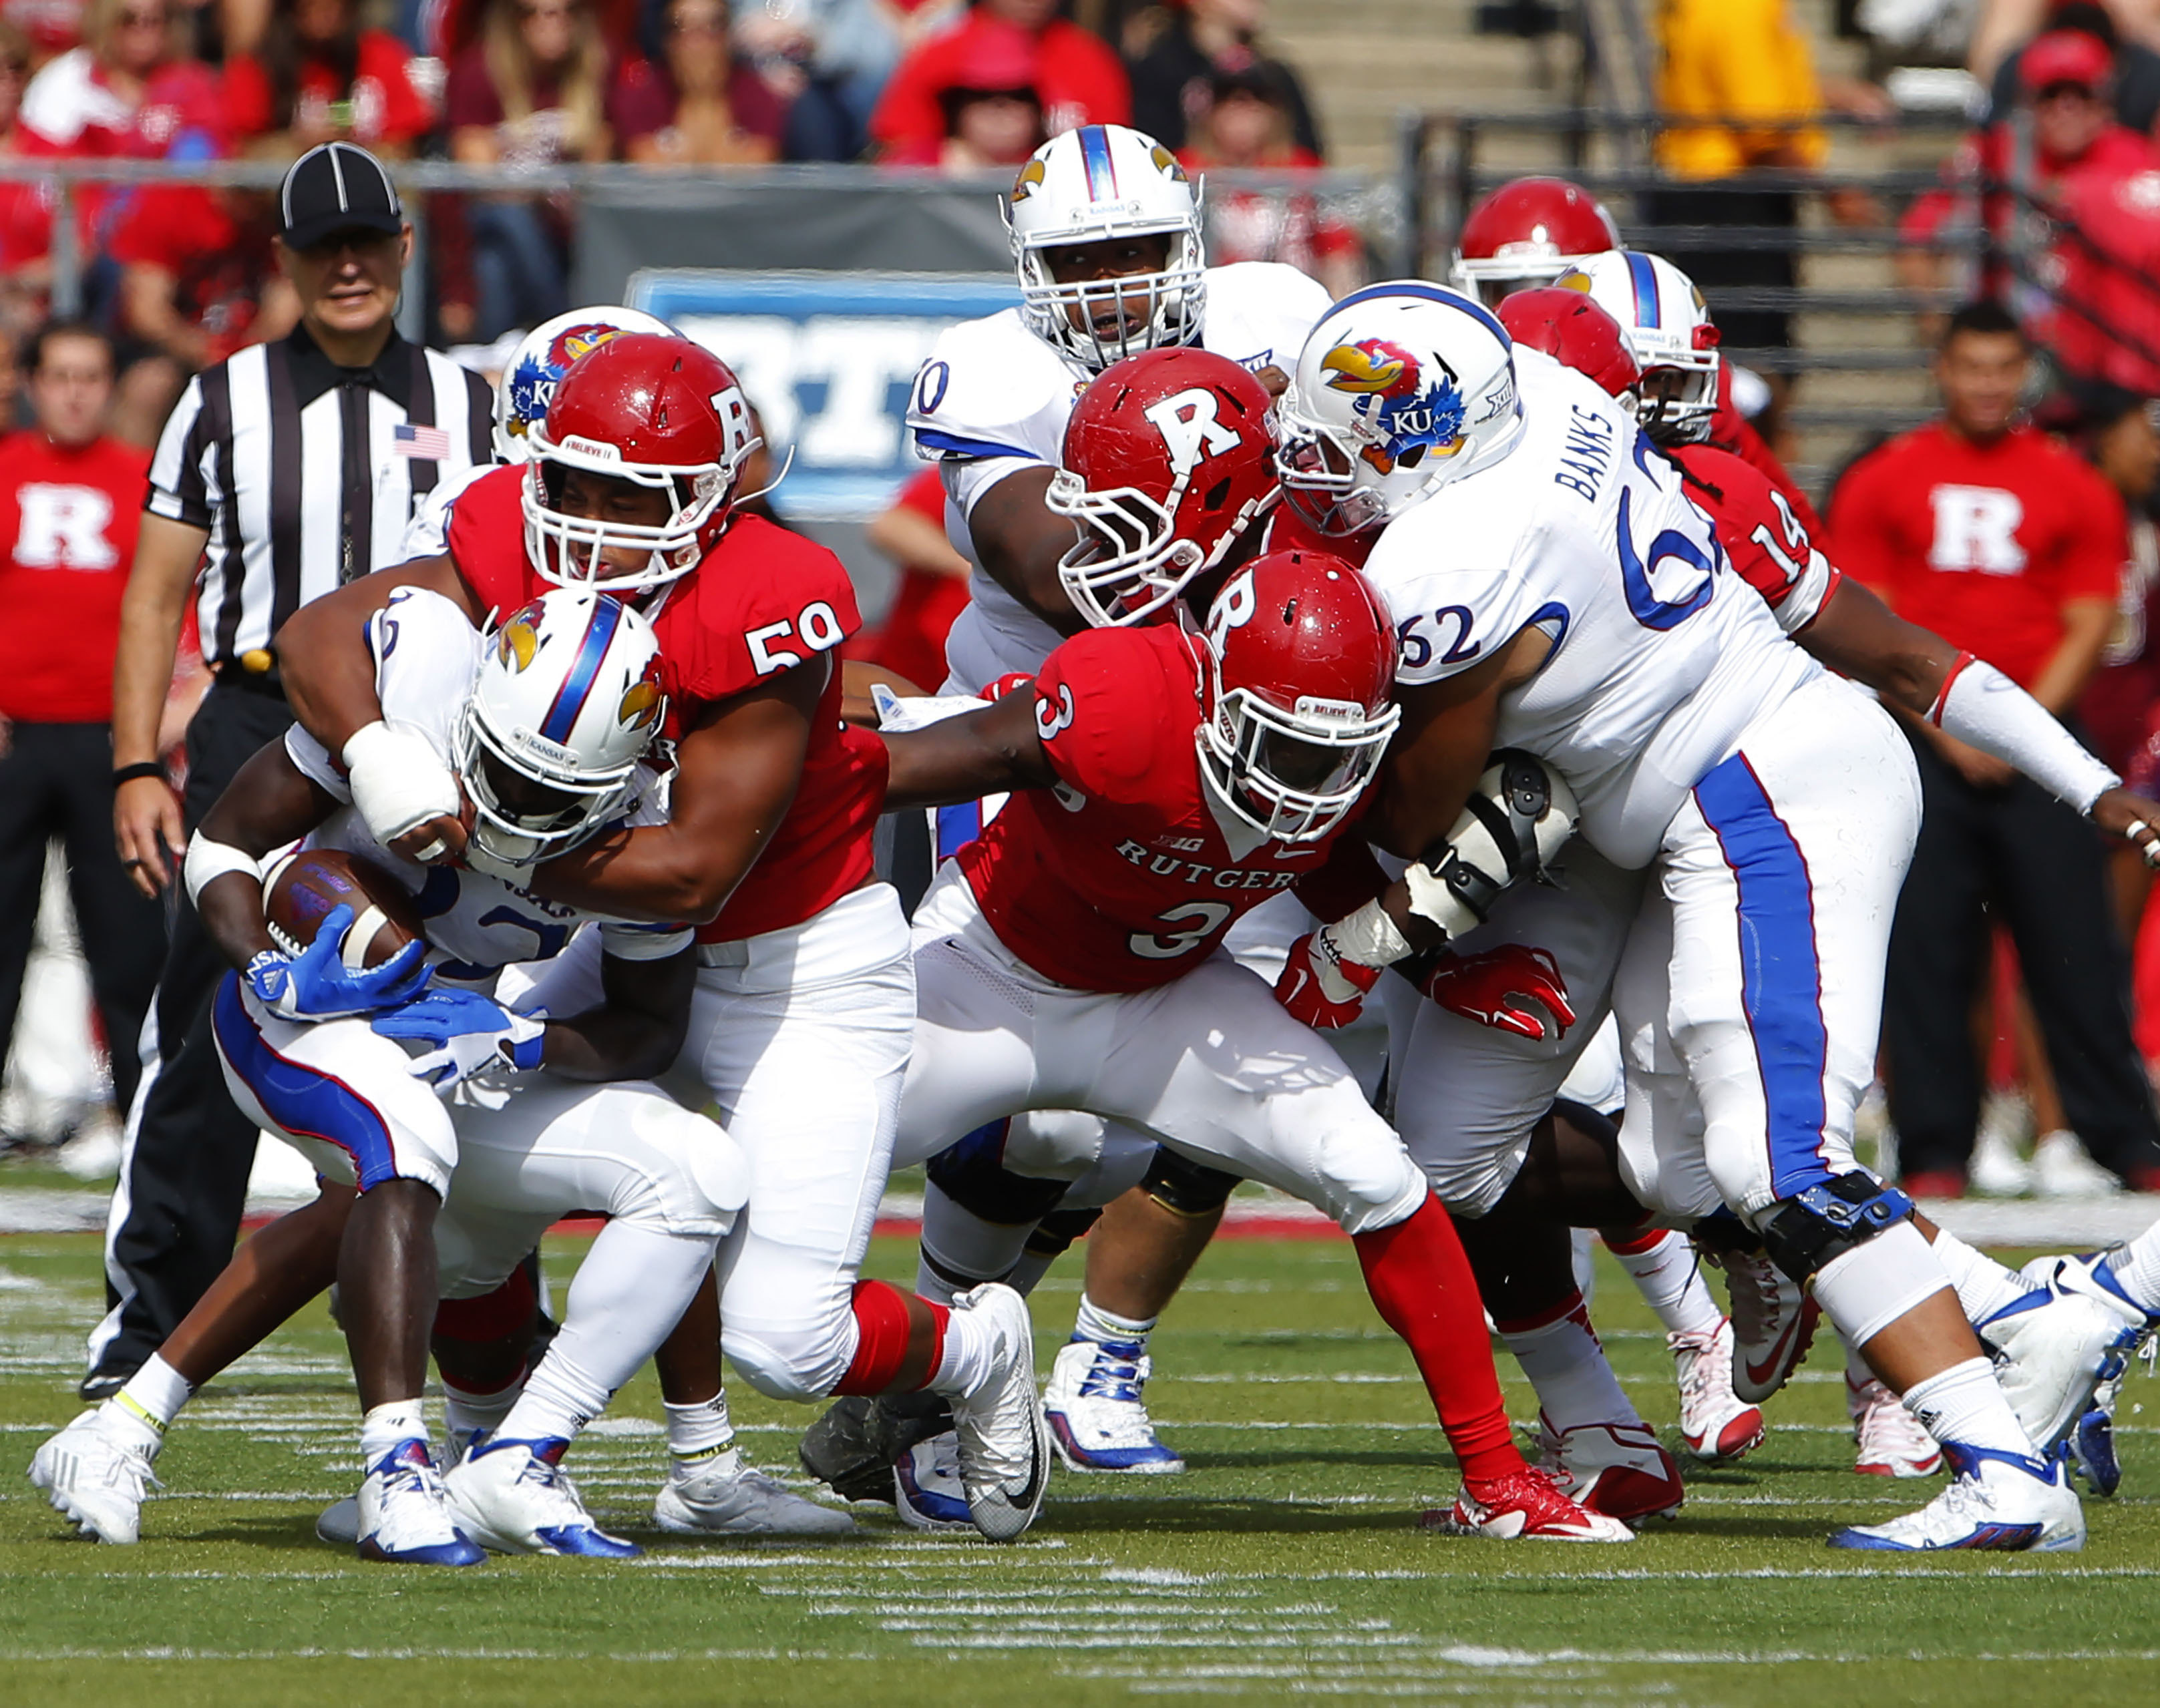 NCAA Football: Kansas at Rutgers